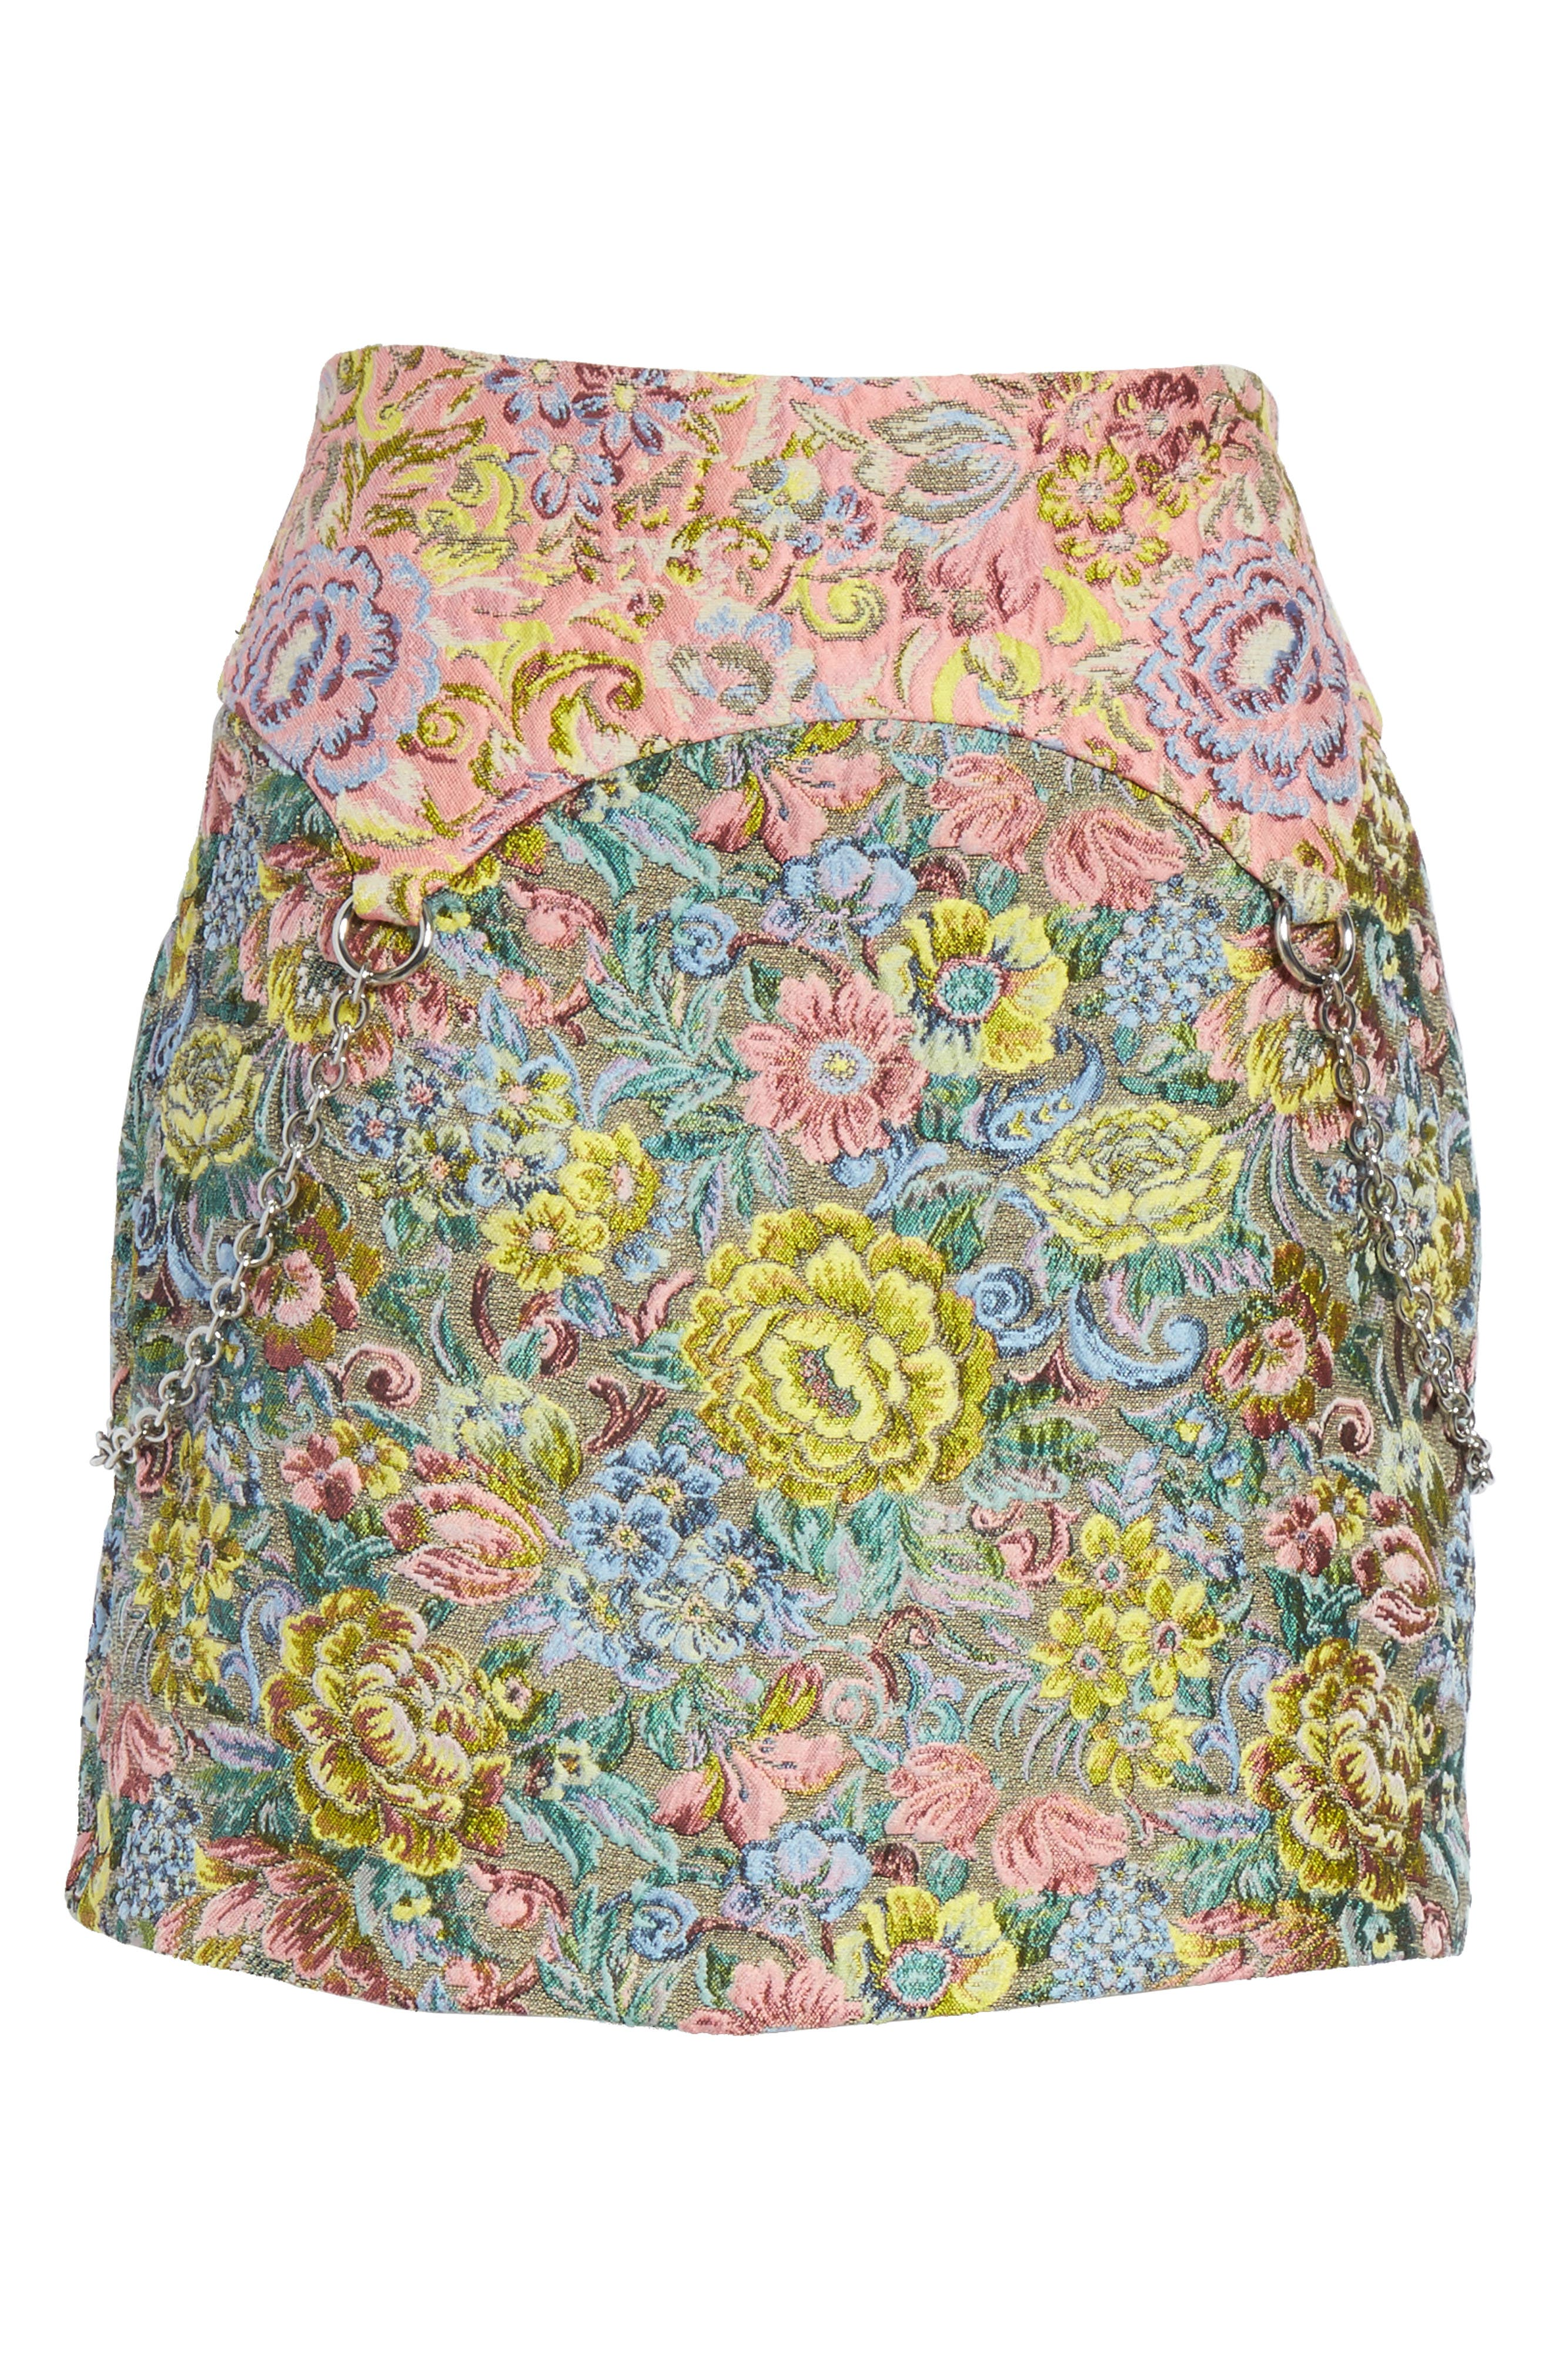 Chatham Brocade Miniskirt,                             Alternate thumbnail 7, color,                             Couch